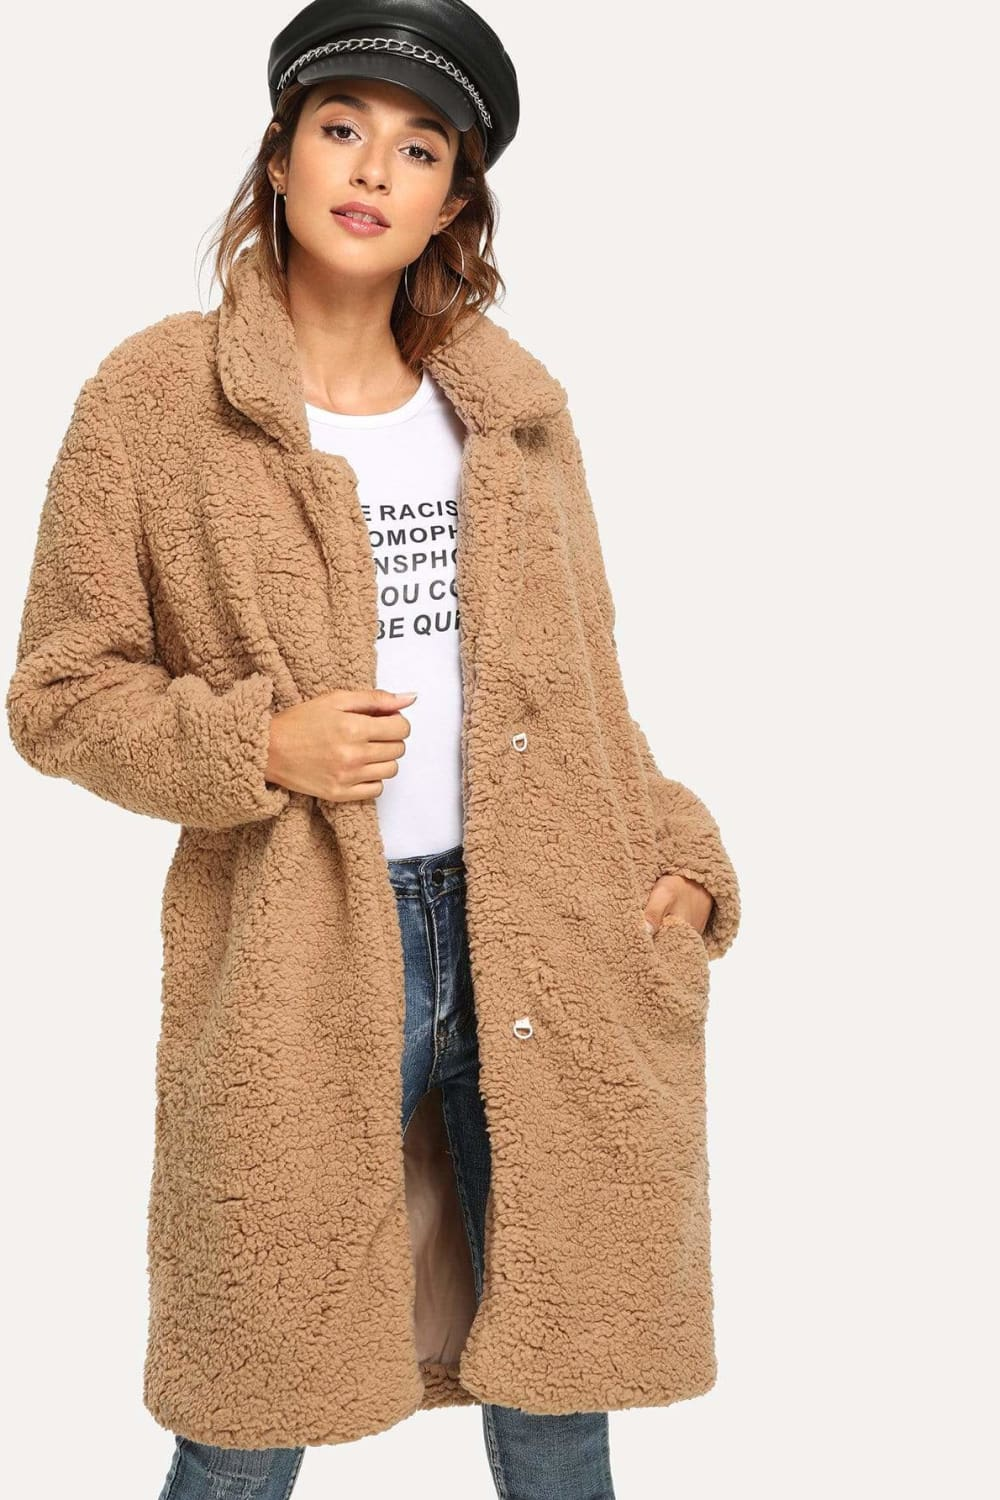 Hailey Long Teddy Coat in Camel - Outerwear - Evan & Jane